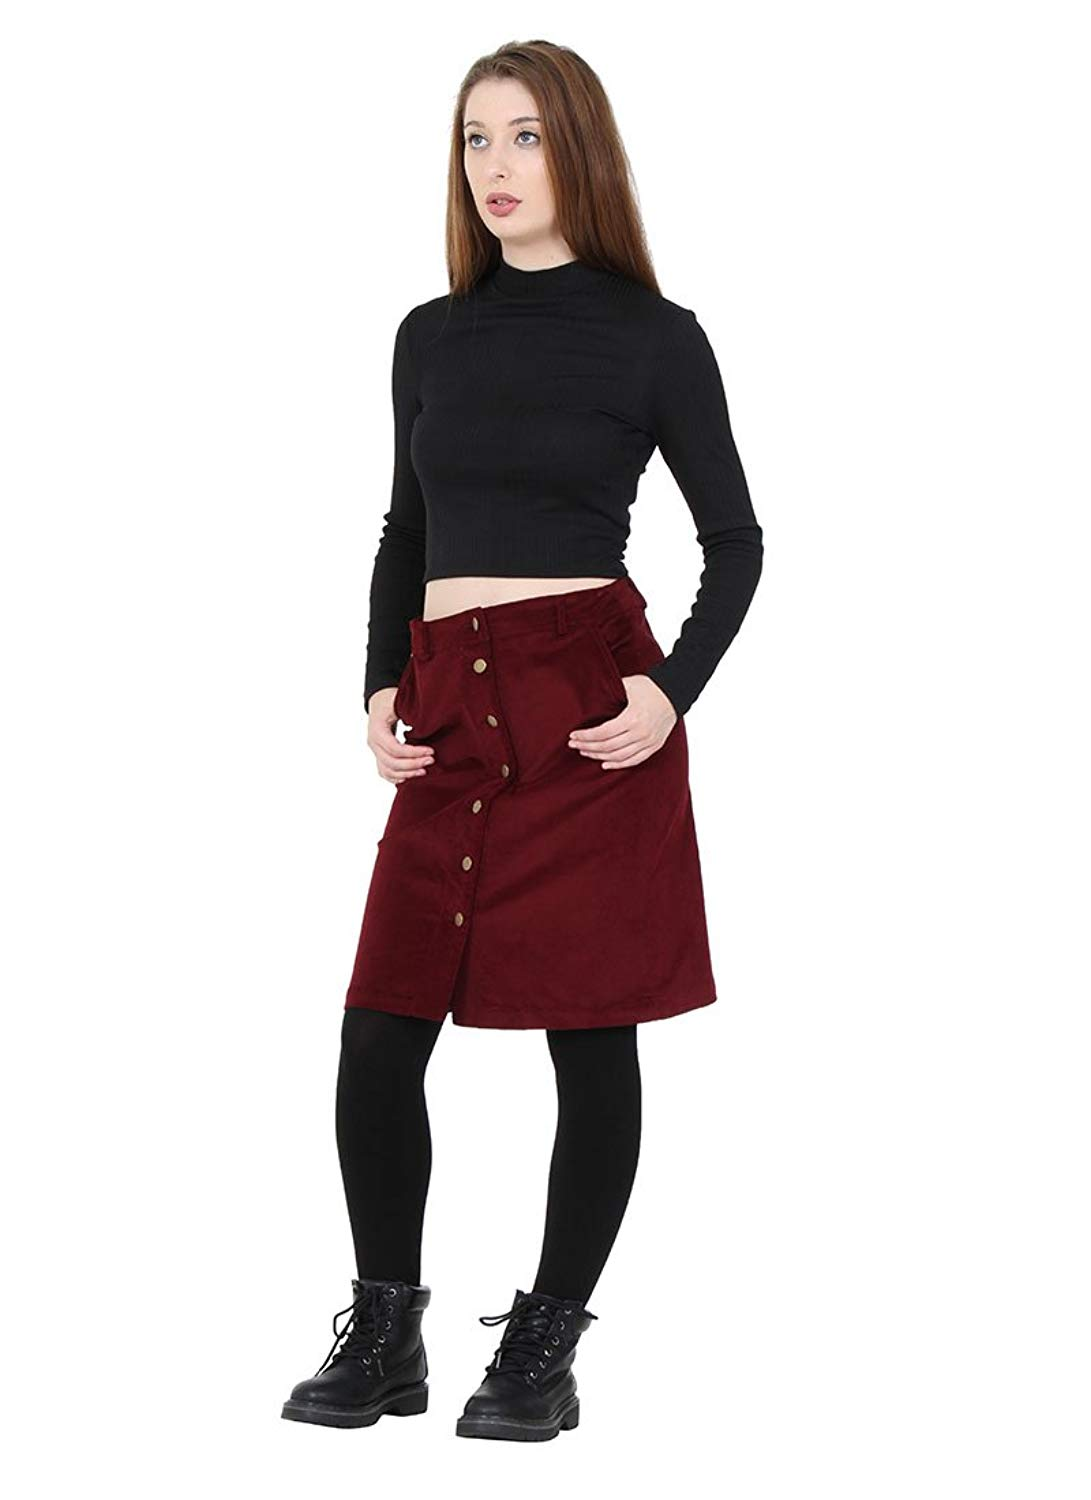 12412fcf0 Get Quotations · K Zell Button Front Corduroy Skirt knee-length ladies cord  skirt with stretch